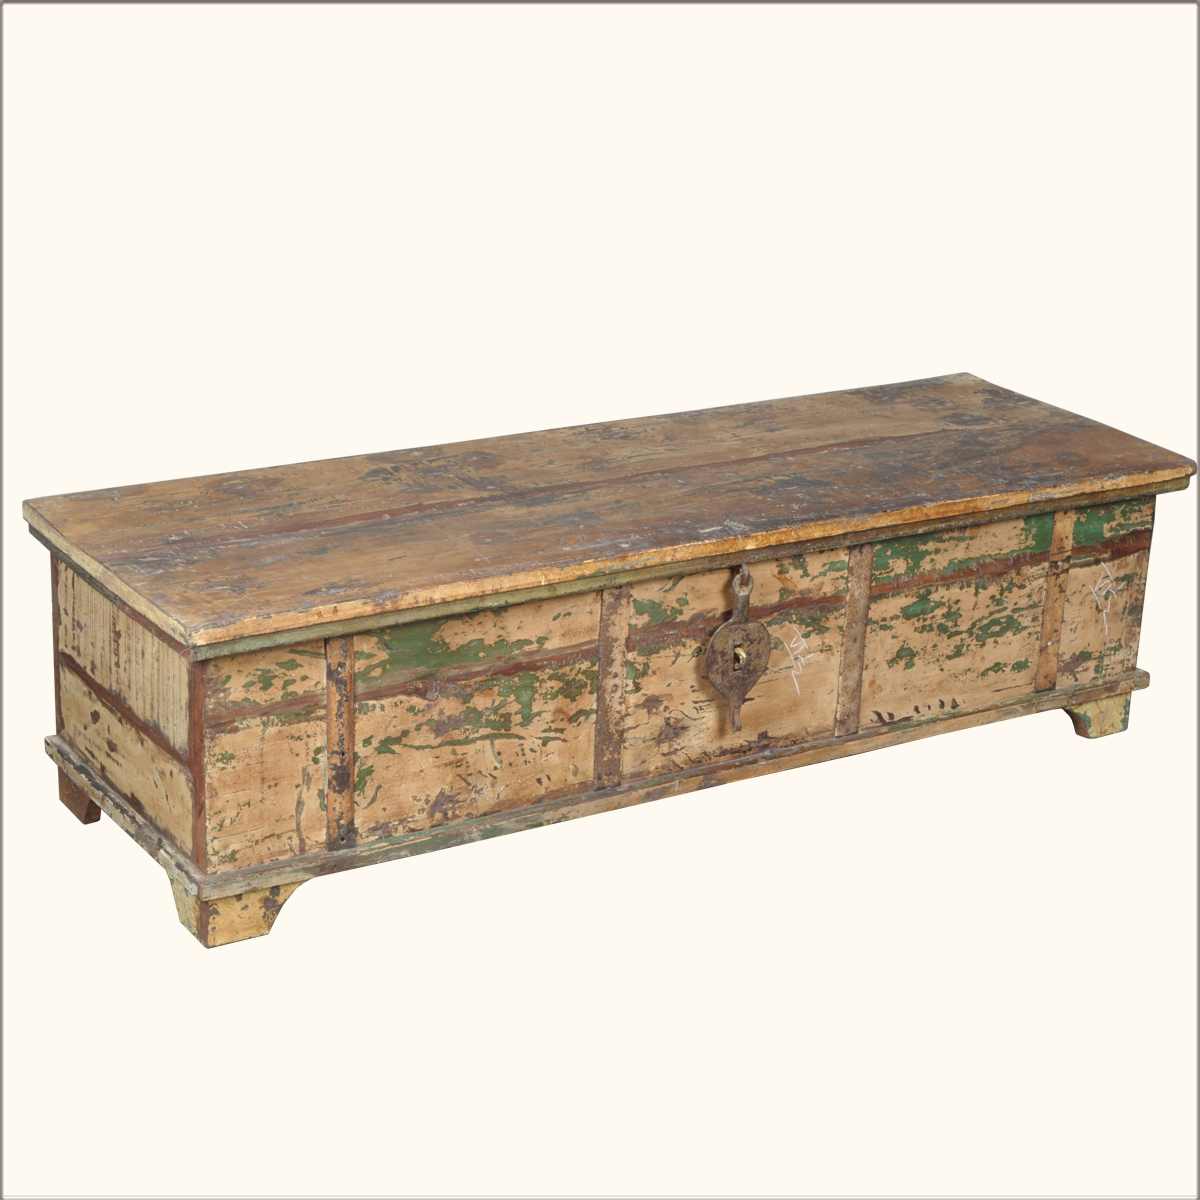 Large rustic reclaimed distressed old wood coffee table chest trunk storage box ebay Coffee table chest with storage